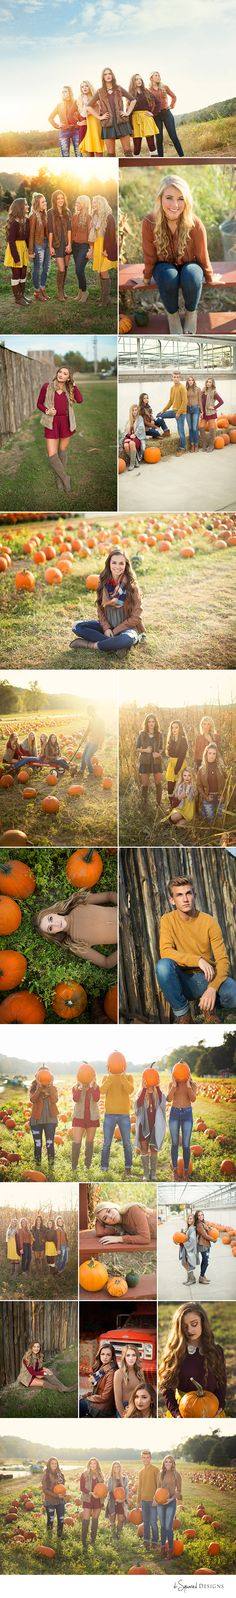 d-Squared Designs St. Louis, MO Senior Photography